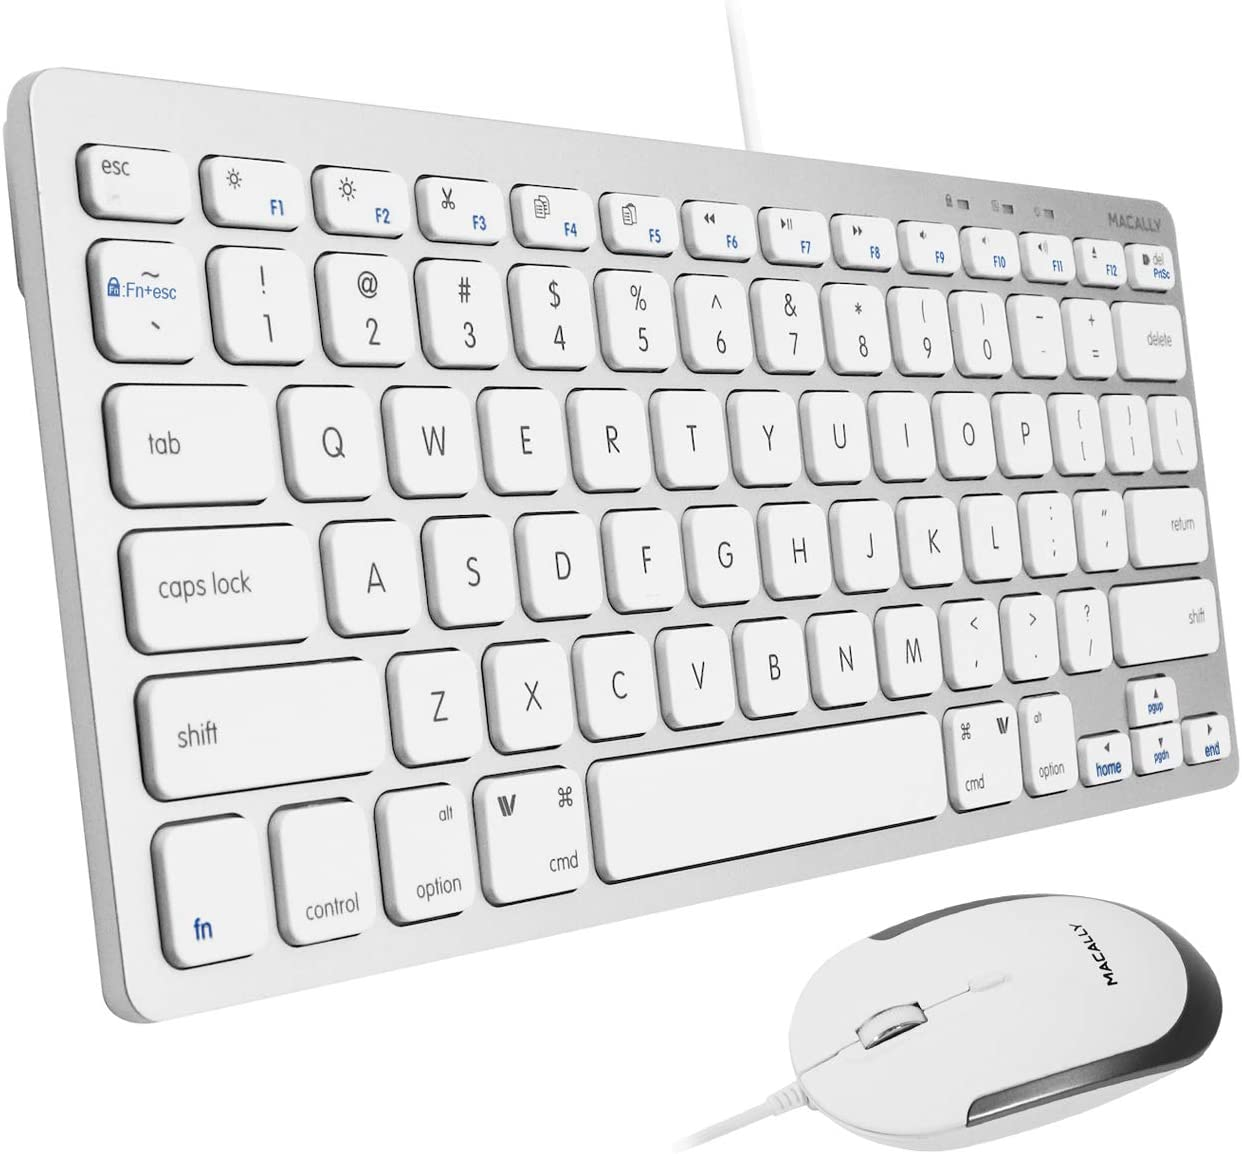 Macally Mini Keyboard and Mouse Combo for Mac and PC - Save Space and Enhance Workflow - Aluminum Compact Keyboard with 78 Slim Keys and (Quiet Click) Silent Mouse - Sleek USB Keyboard and Mouse Wired